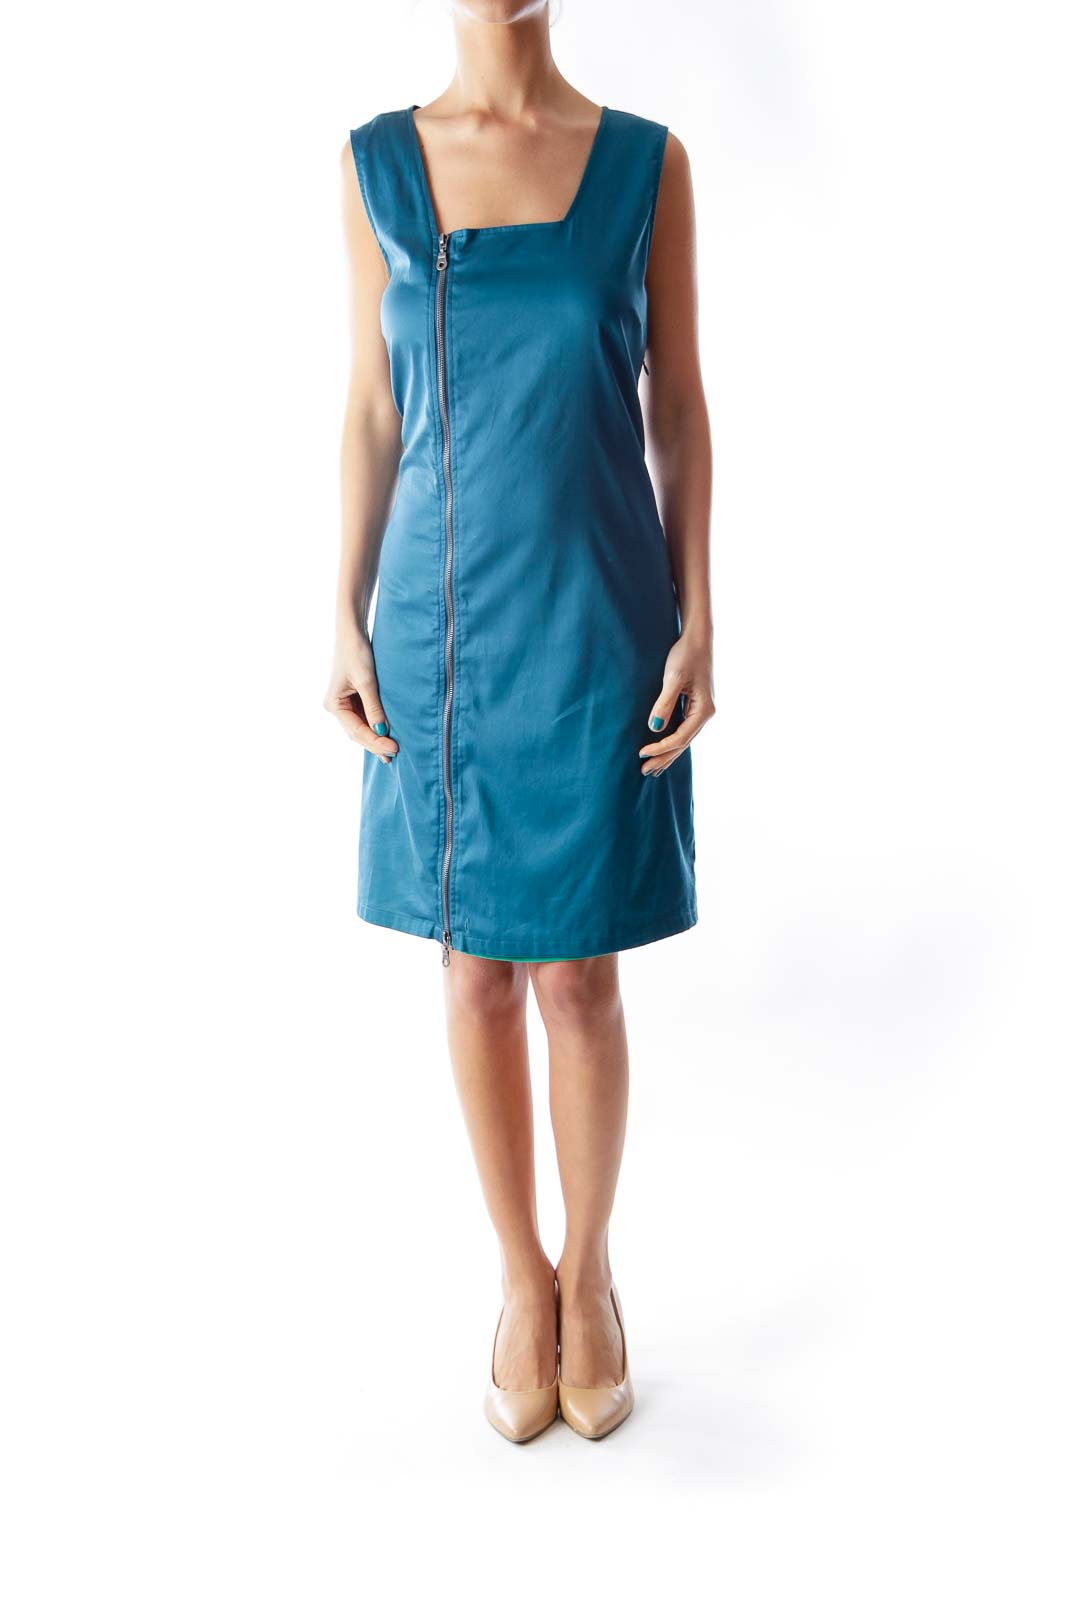 Blue Side Zipper Dress